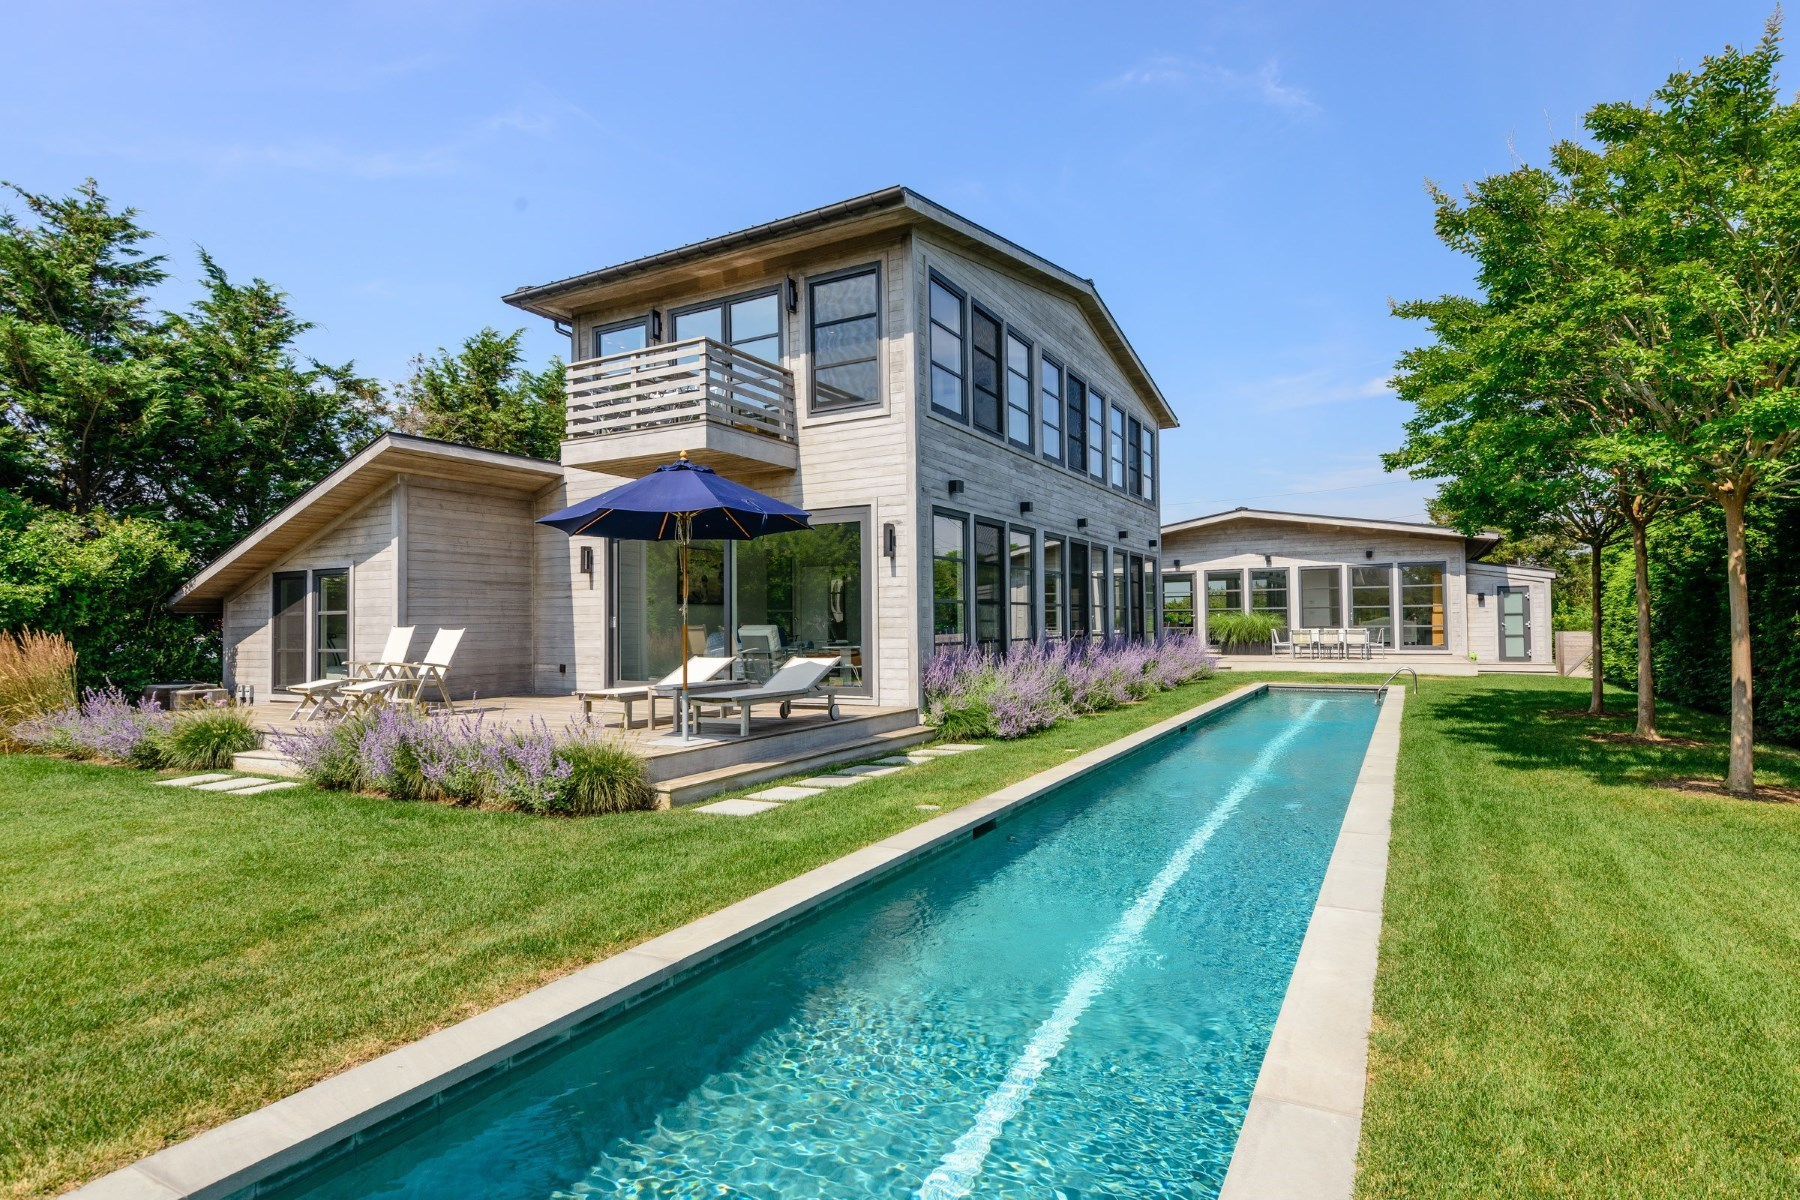 Villa per Vendita alle ore Modern Compound, Immediate Ocean Access 108 Town Line Road Sagaponack South, Sagaponack, New York, 11962 Stati Uniti